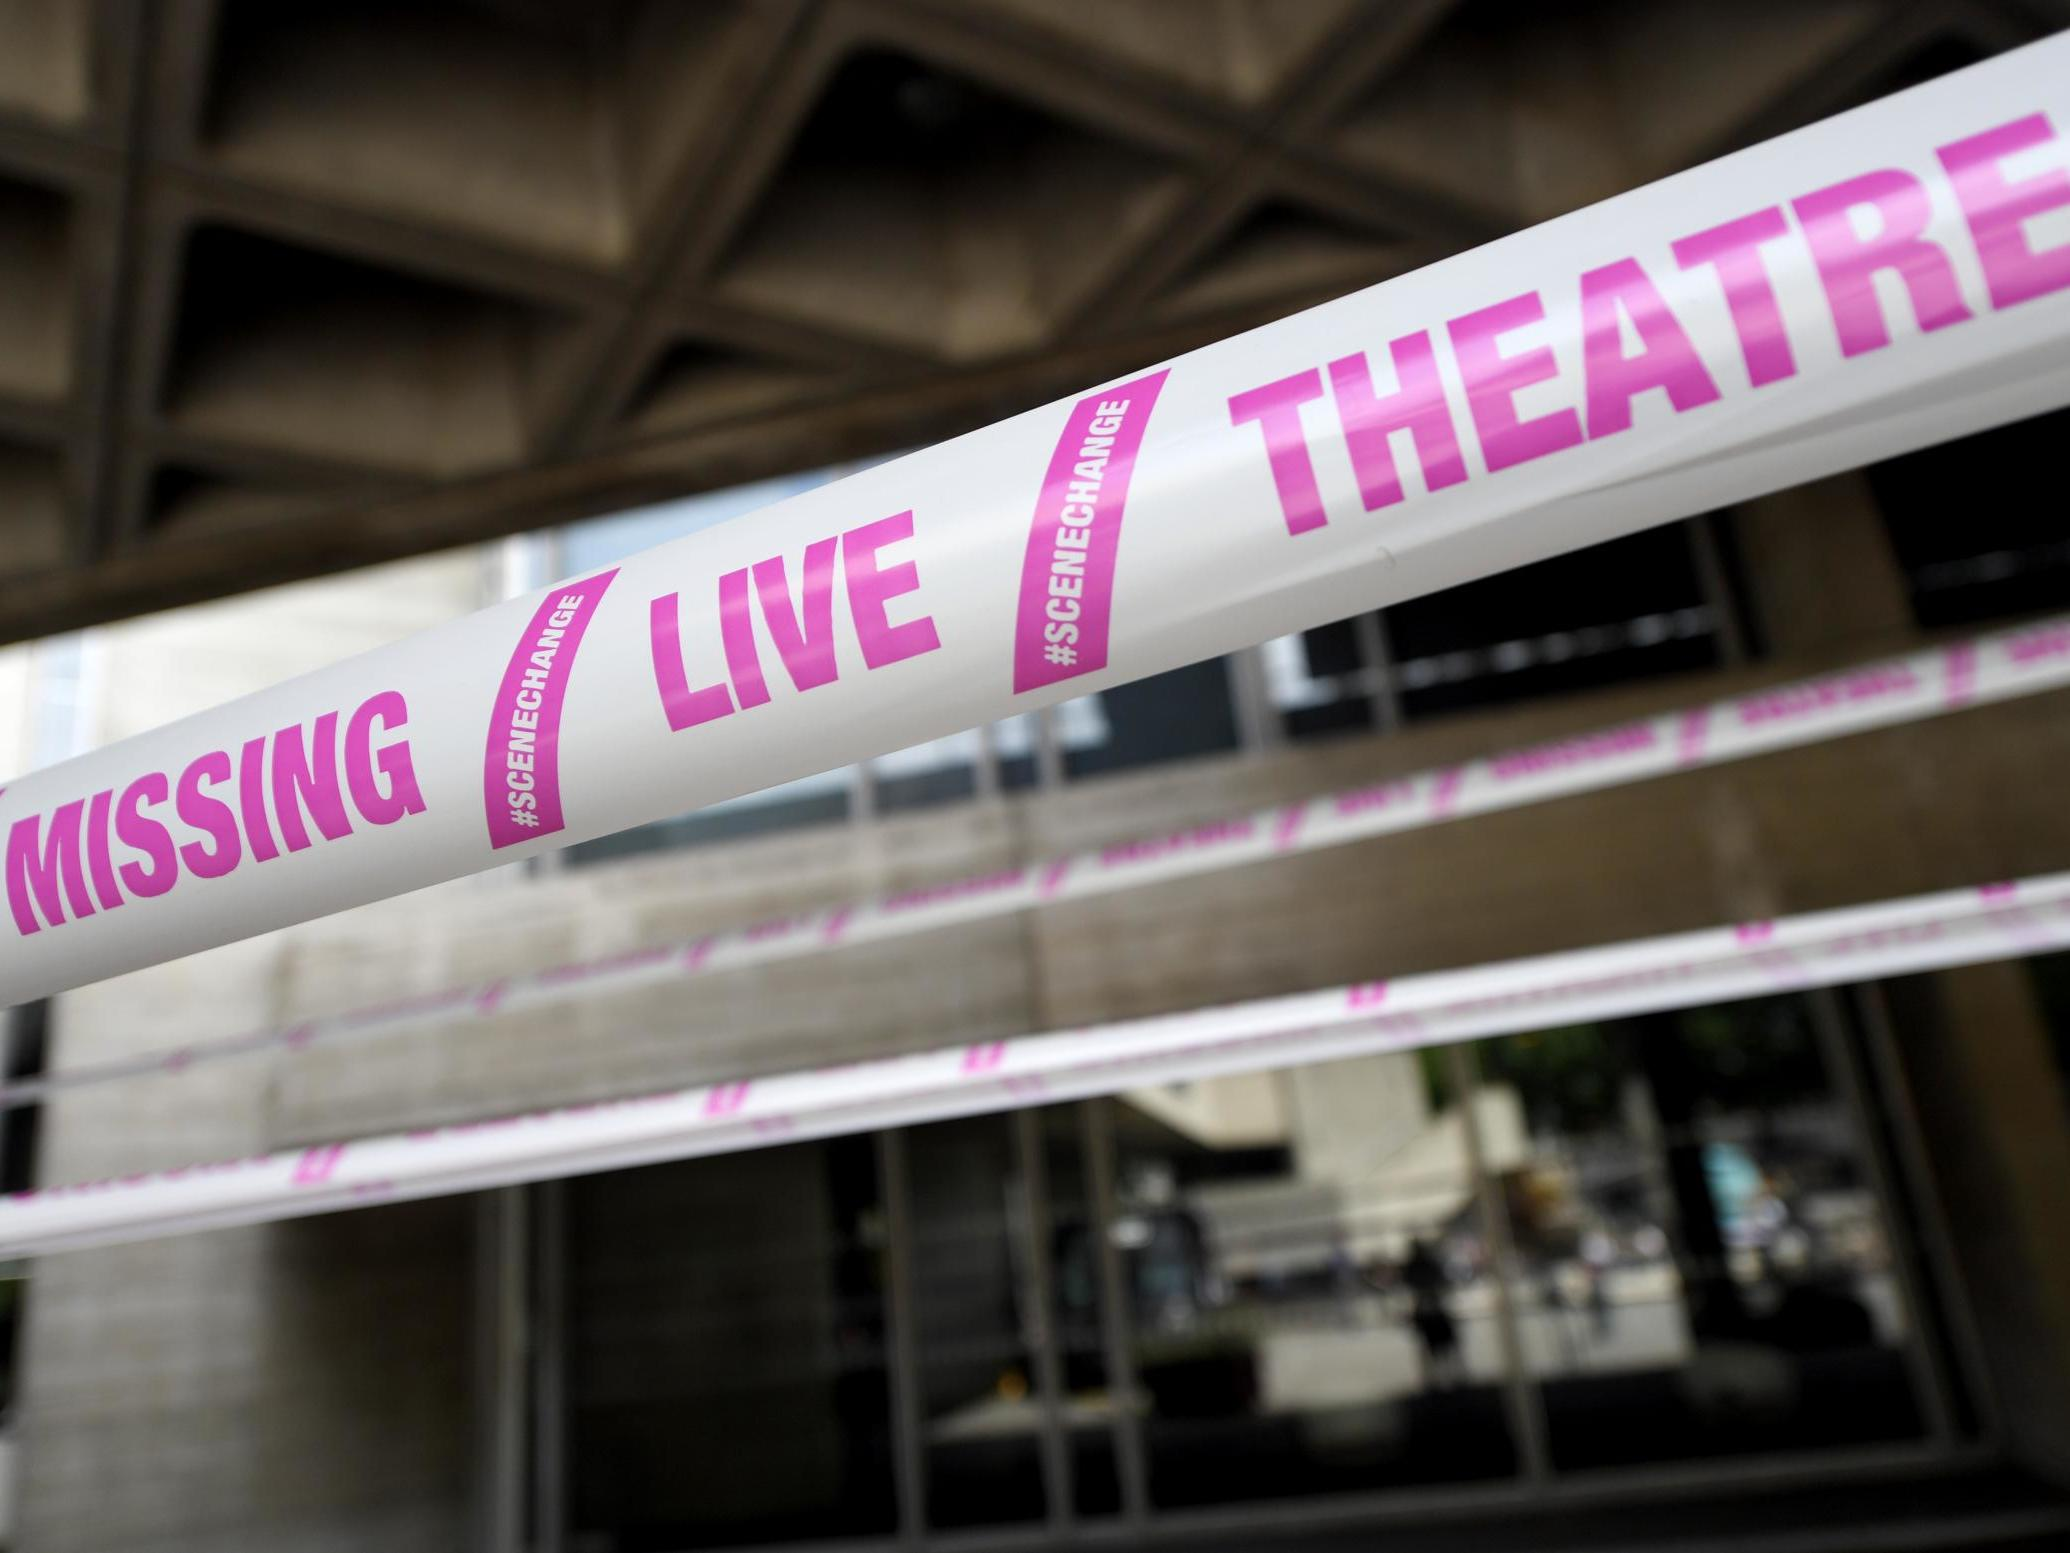 National Theatre to reopen with 'explosive' play about race